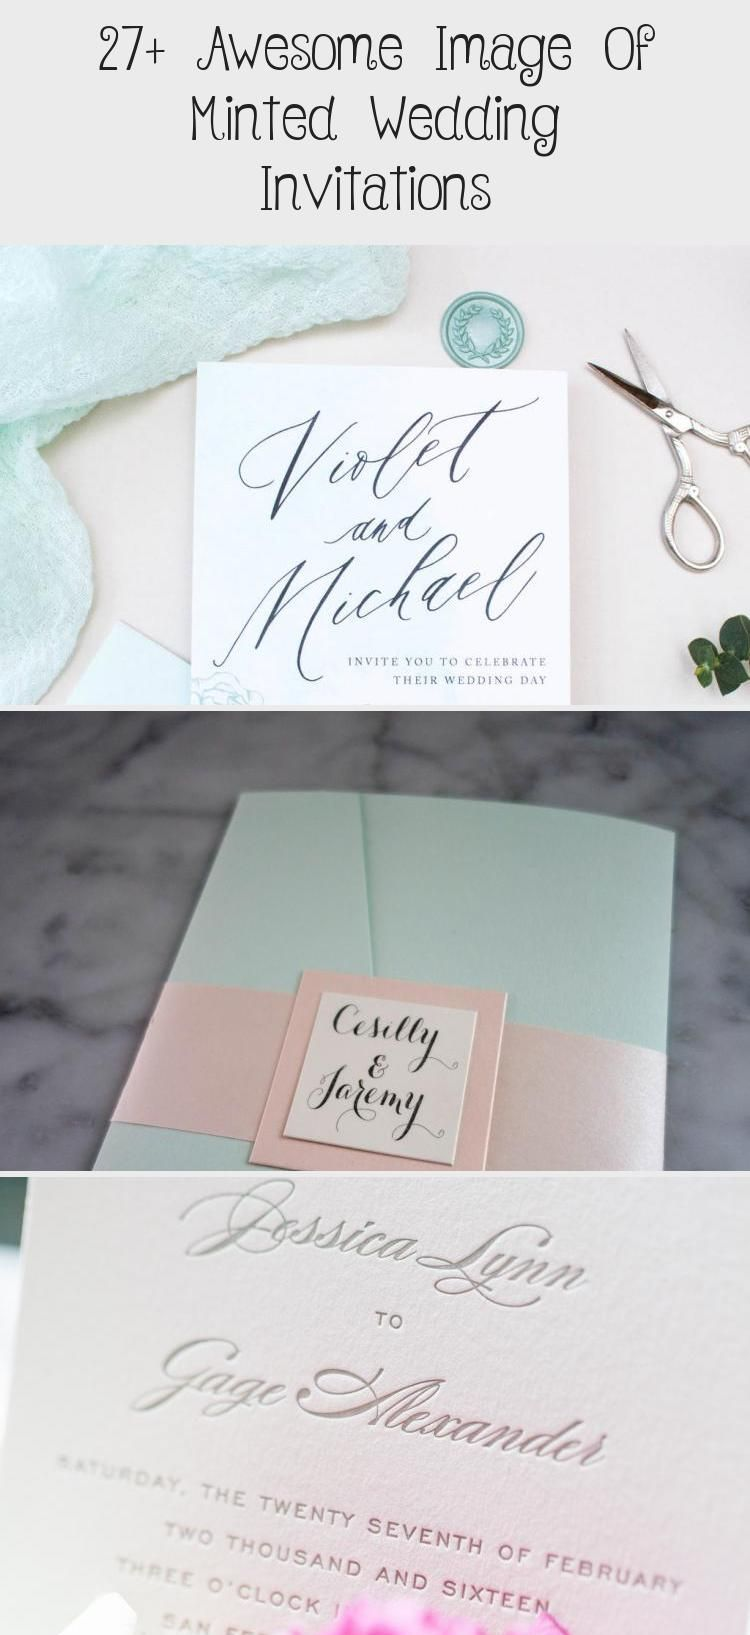 27 Awesome Image Of Minted Wedding Invitations Wedding 27 Awesome Imag In 2020 Minted Wedding Invitations Coral Wedding Invitations Wedding Invitations Mint Green